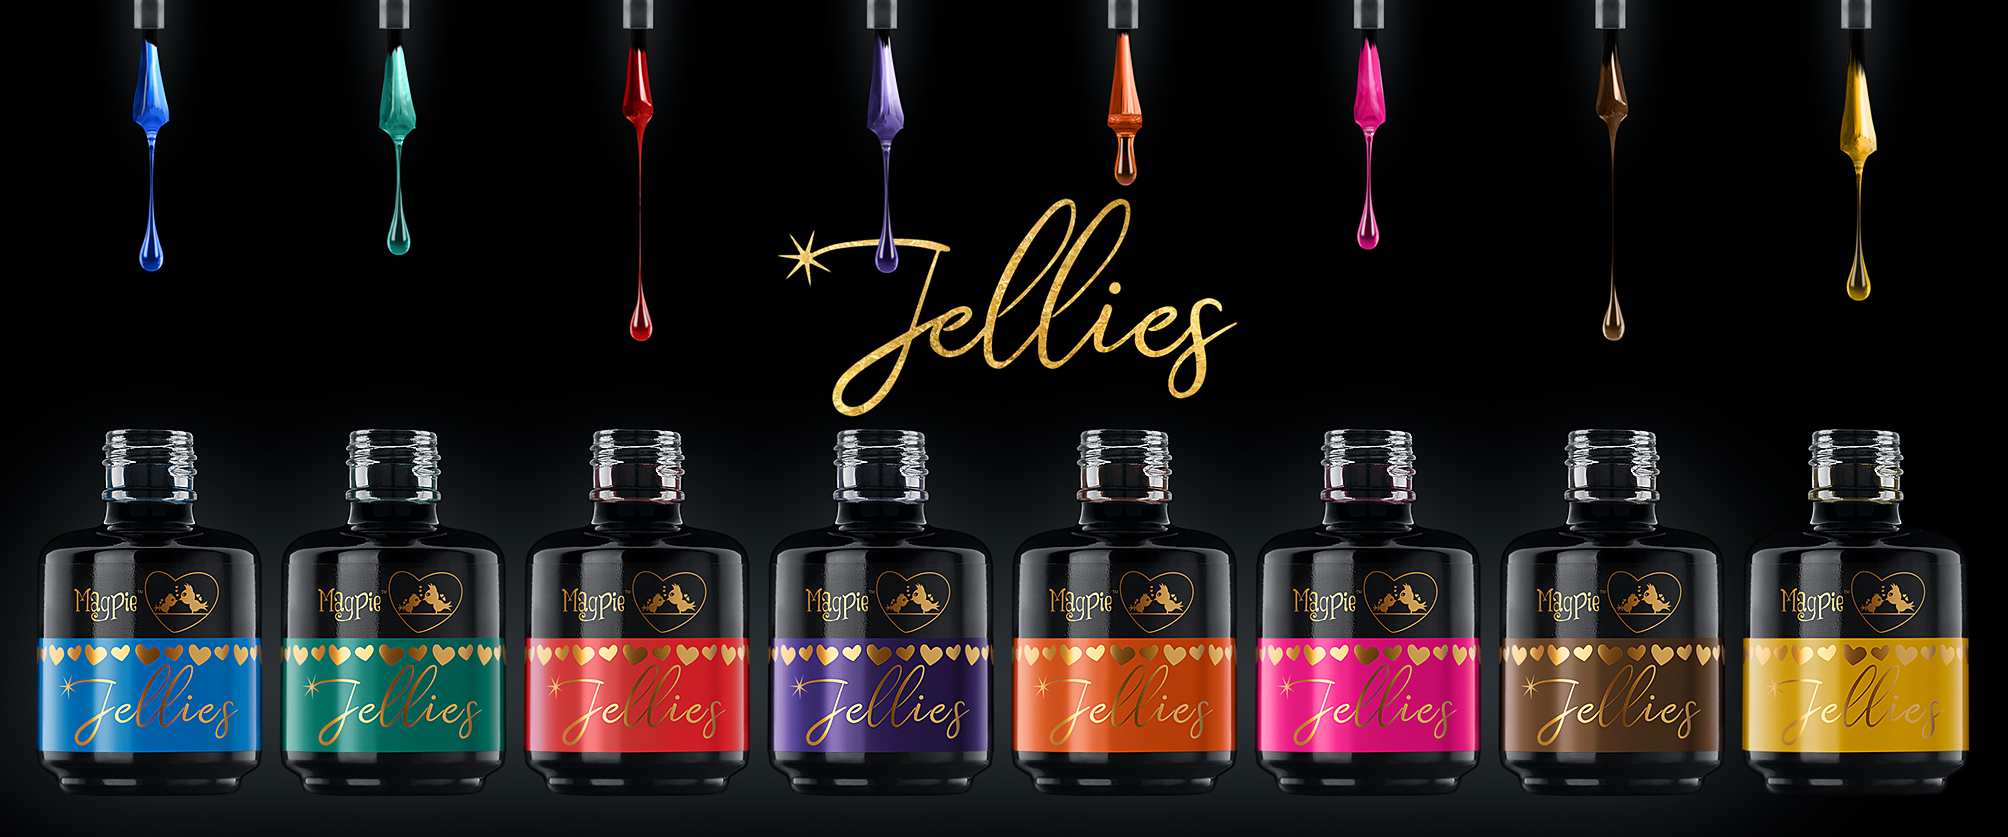 Magpie Products - Jellies Gels